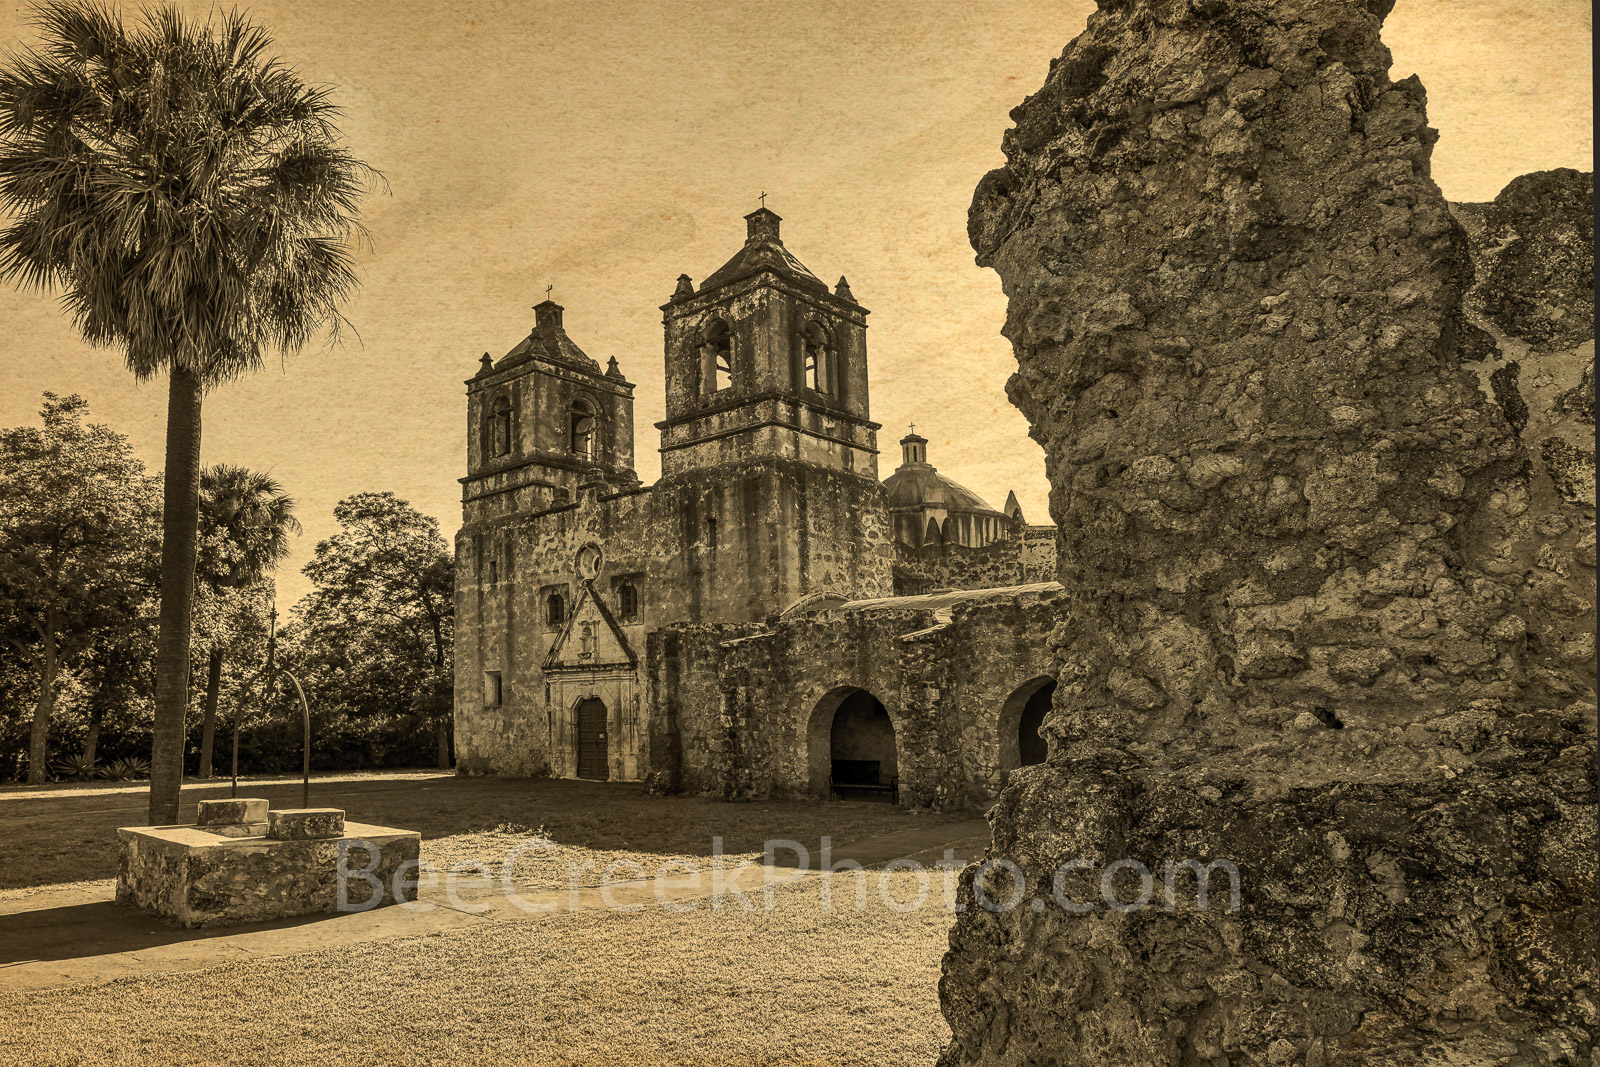 Concepción, San Antonio, vintage, spanish missions, indians, landmark, historic, downtown, skies, texians, mexicans, Texas missions, National Historic Landmarks, world heritage site, Battle of Concepc, photo